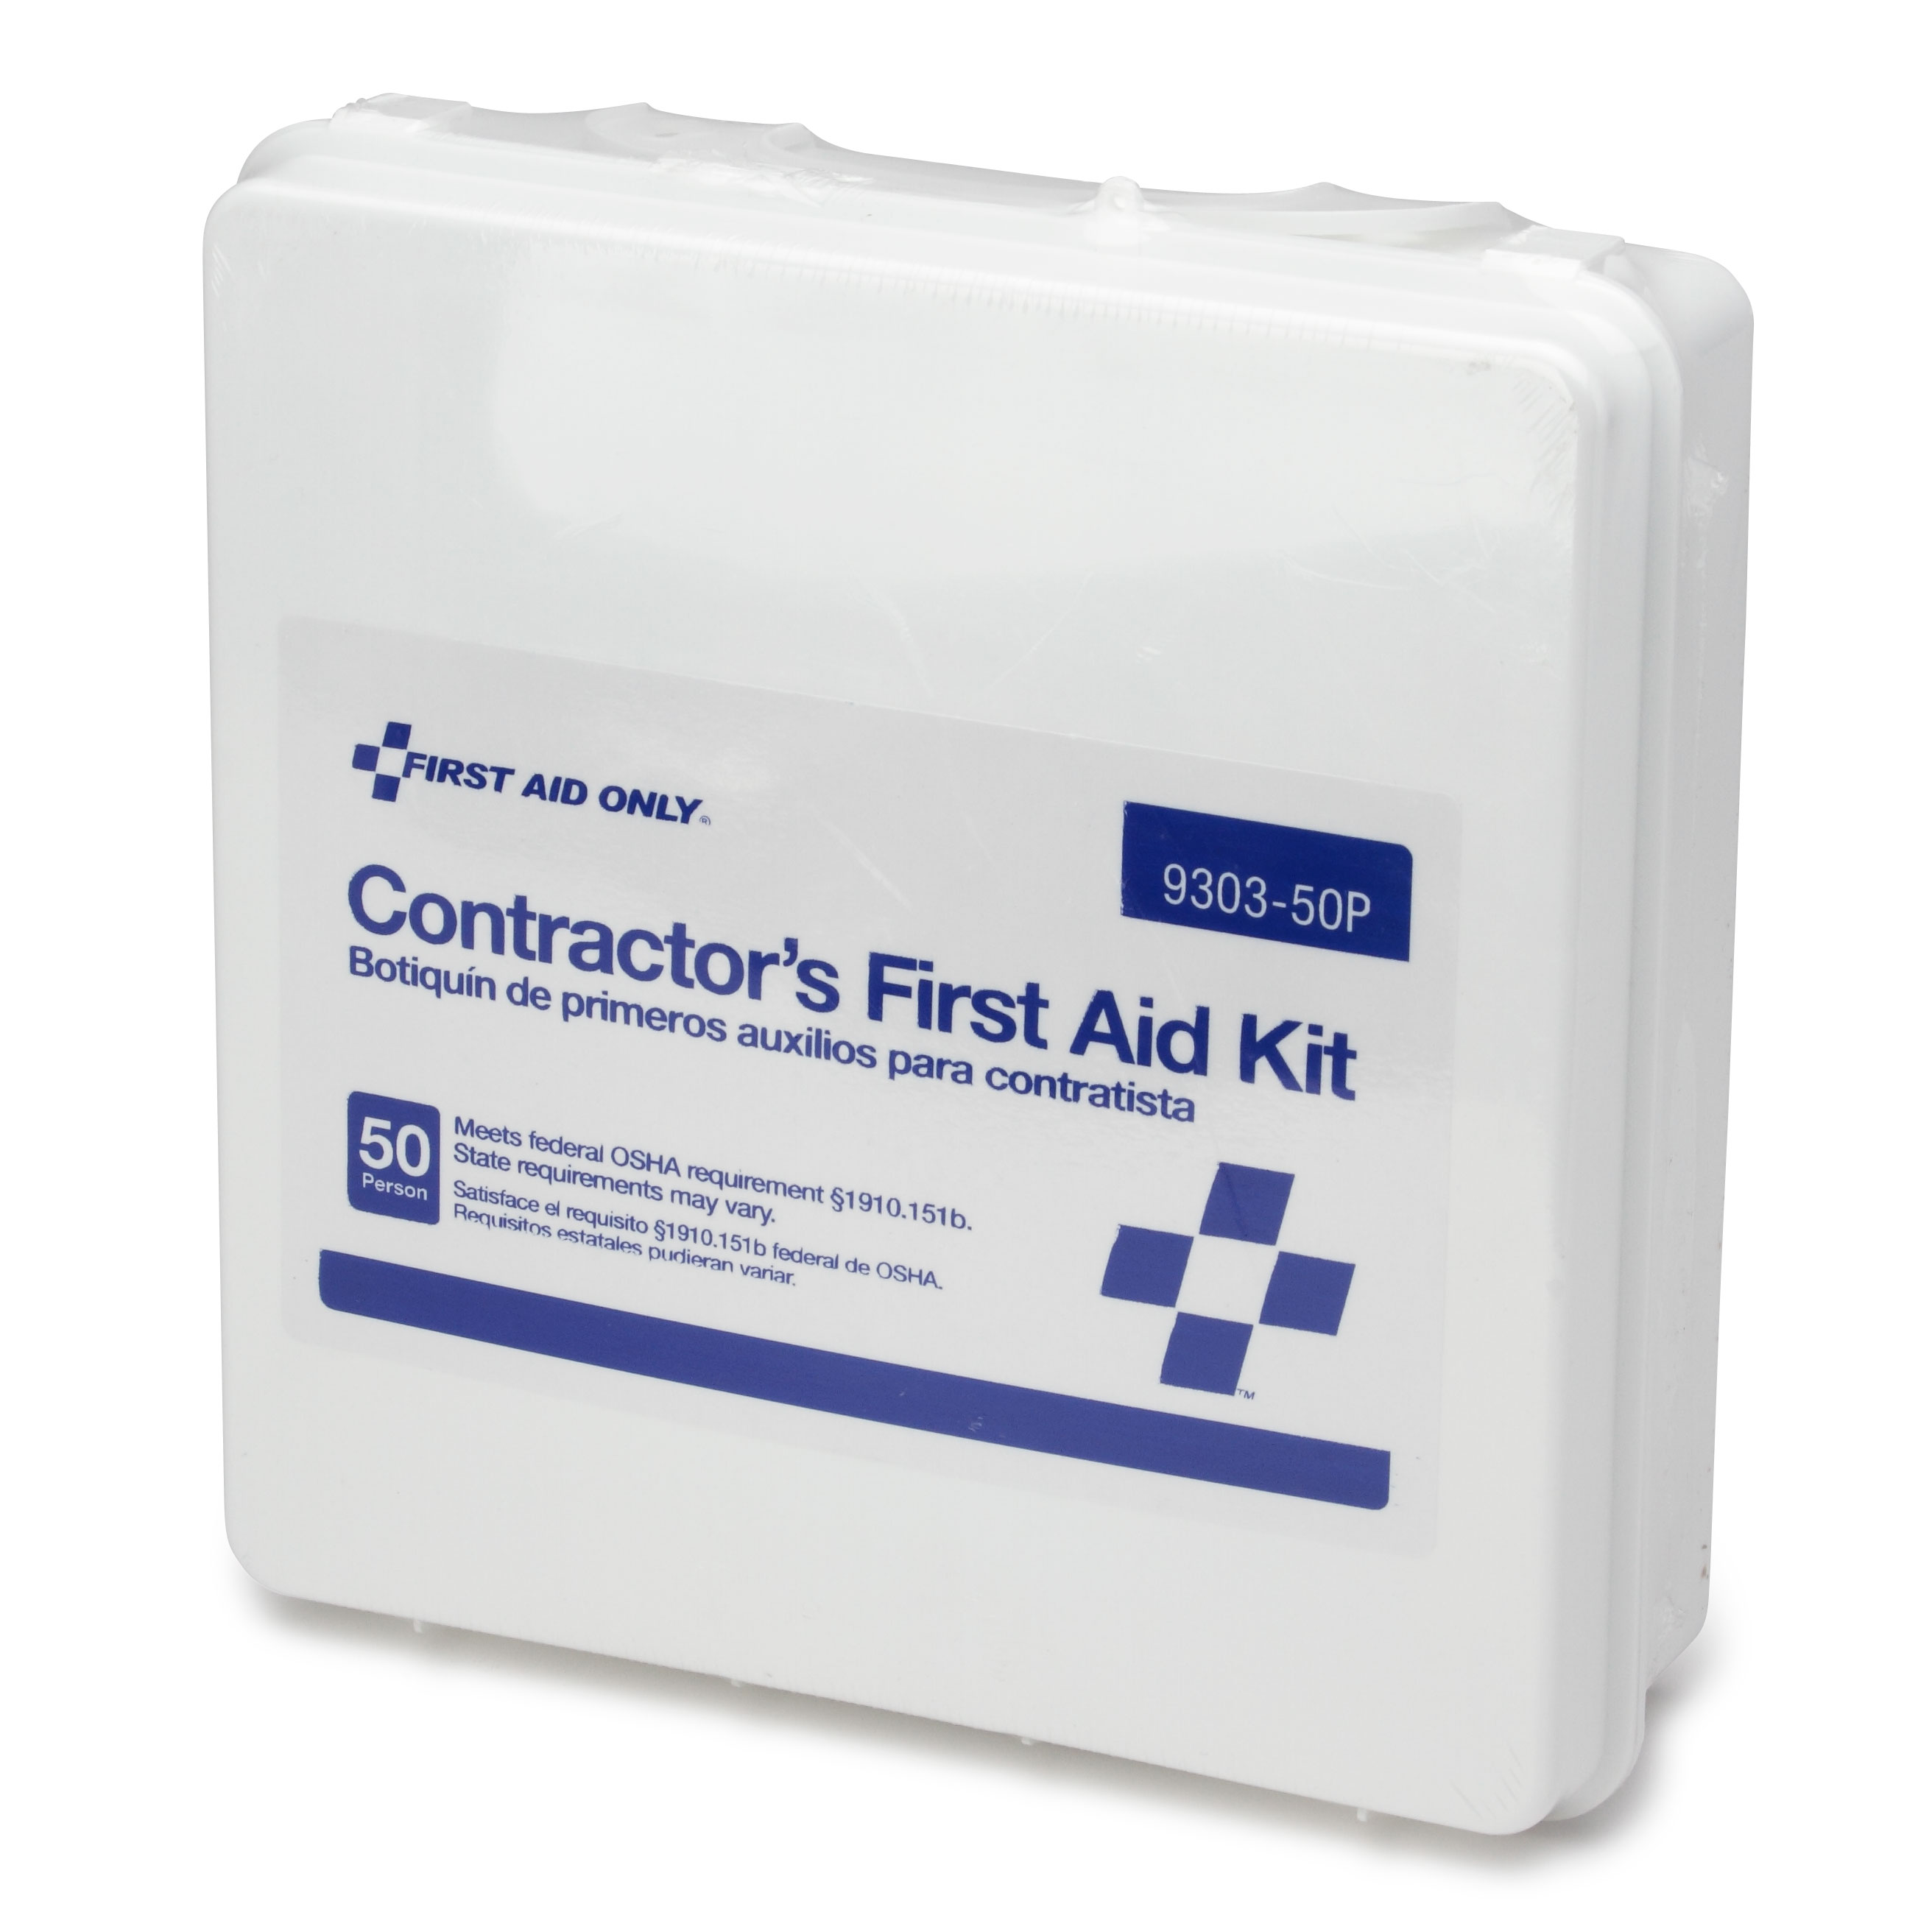 Royal Industries FAK 50 P first aid supplies